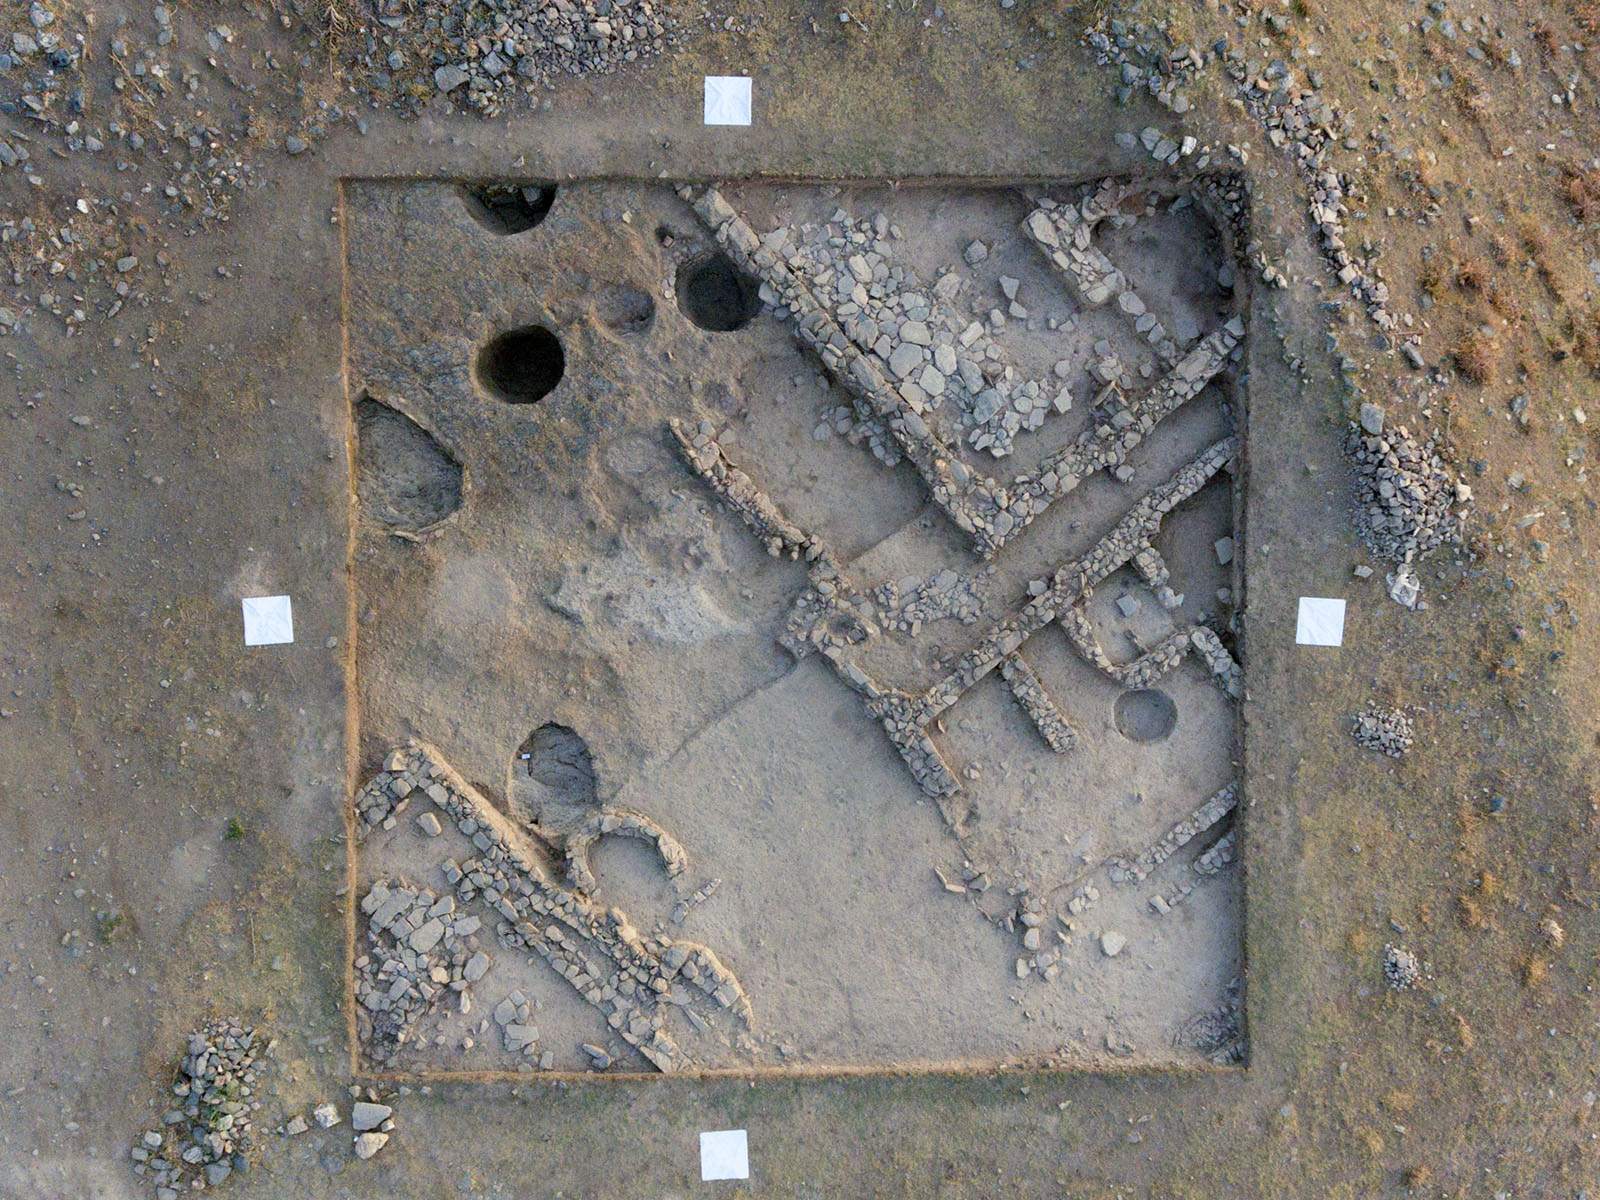 Fig. 4. Overhead view of area 97.541 (north up). White squares are 1 m on a side.